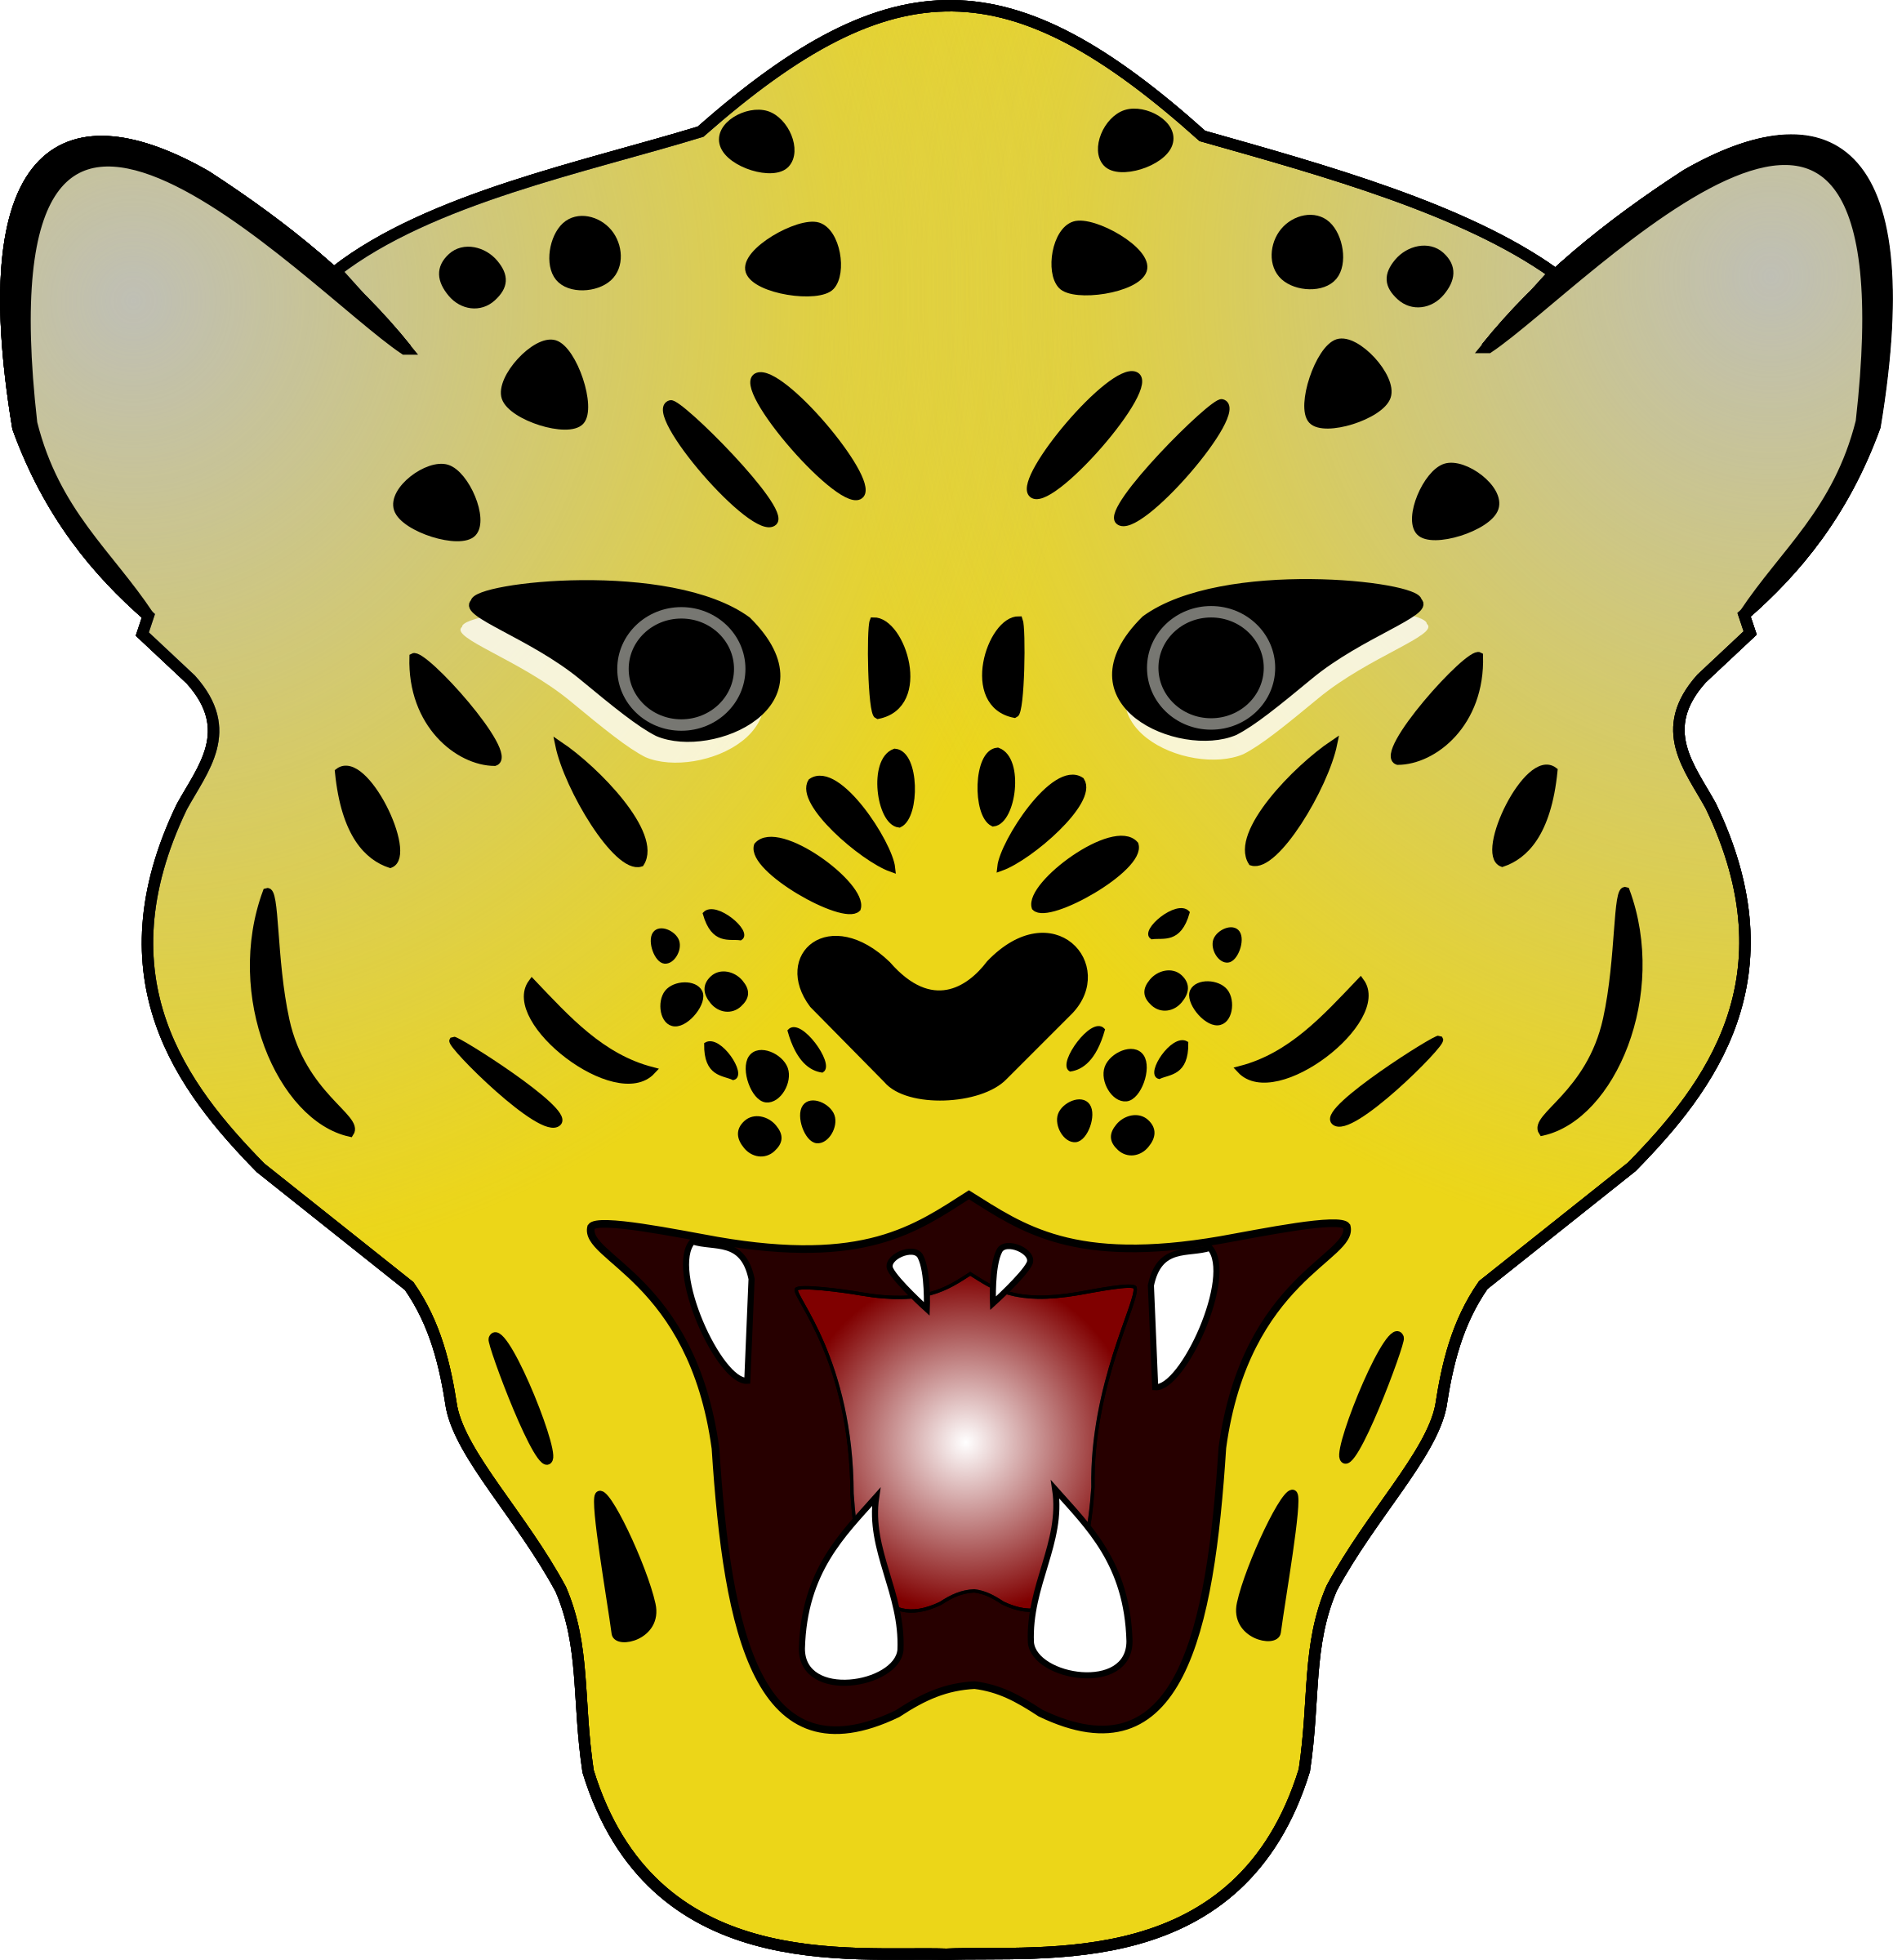 Leopard head by Firkin